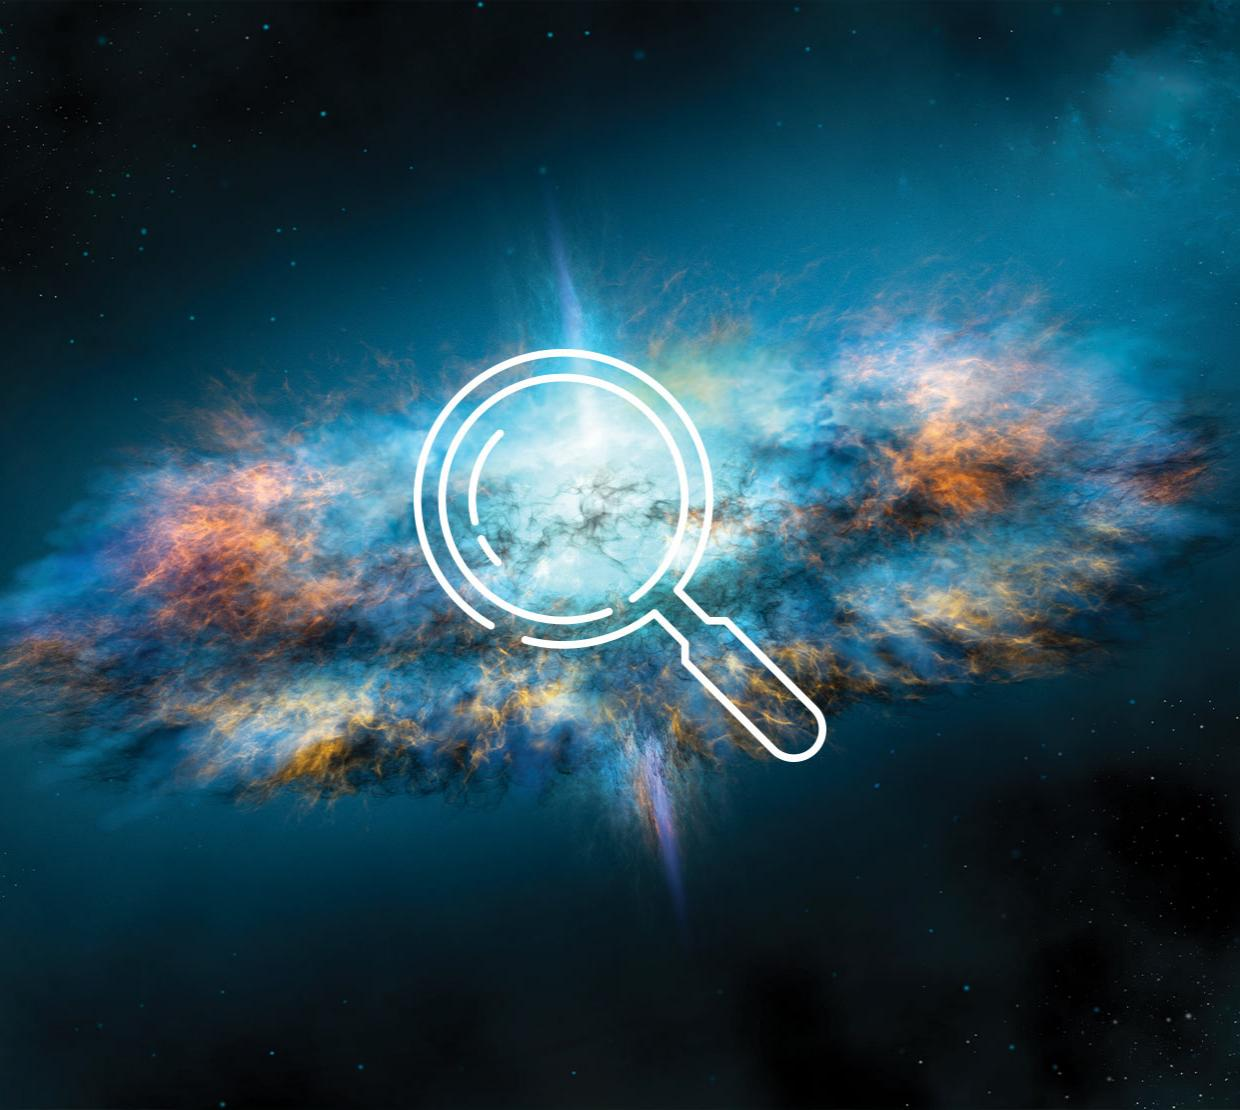 Magnifying glass icon above image of galaxy